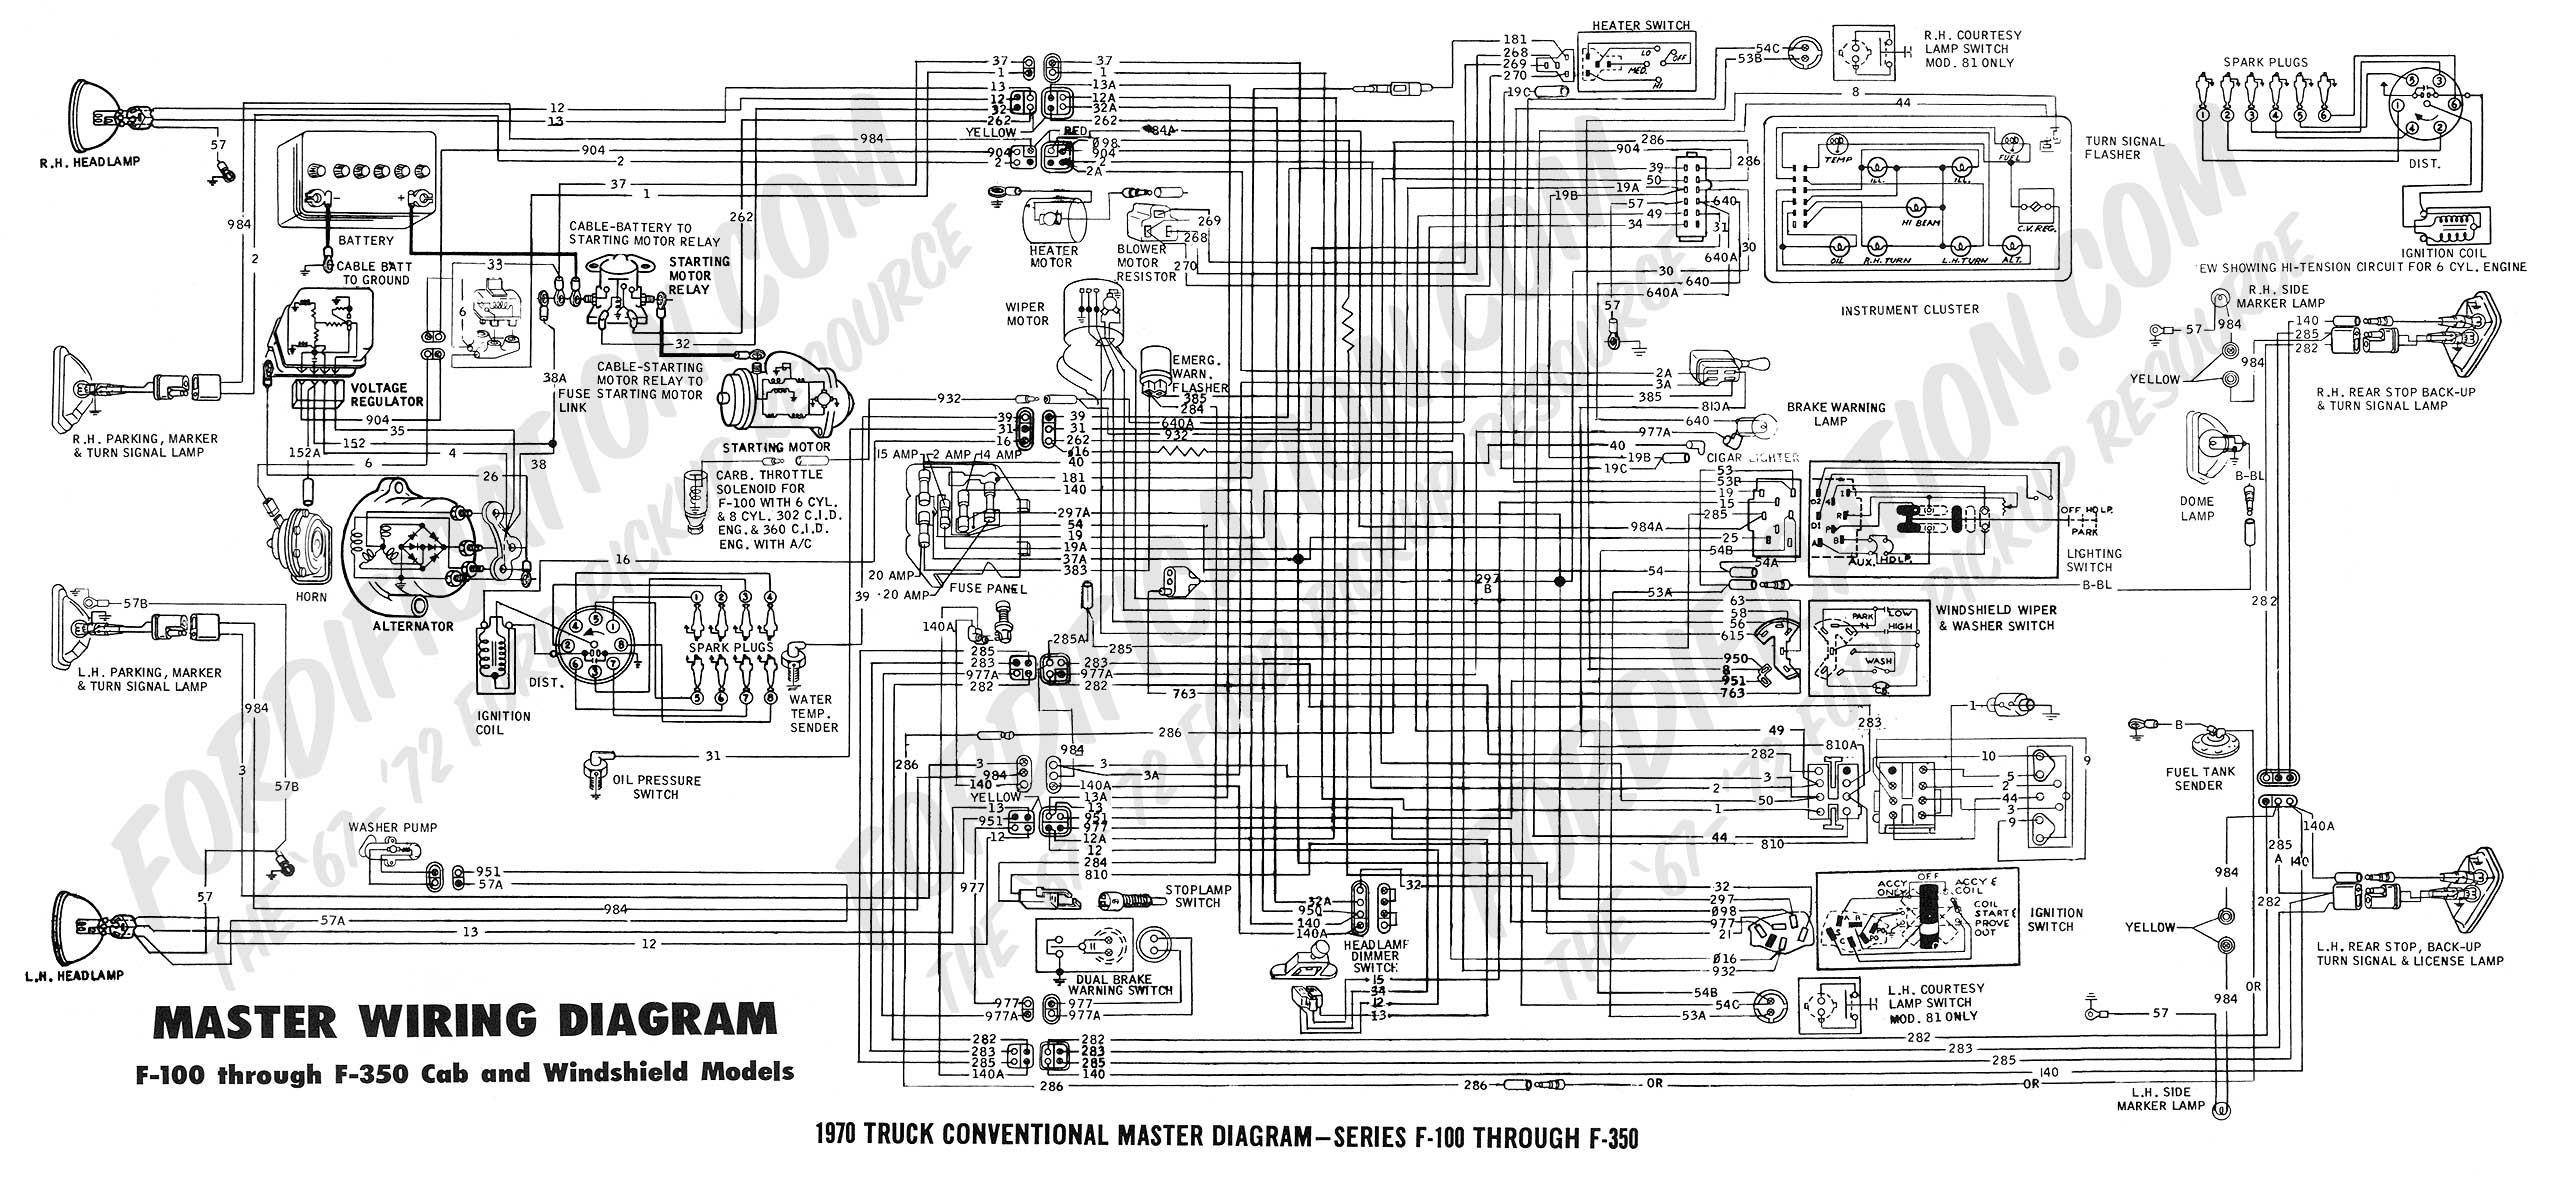 wiring diagram 70_master ford truck technical drawings and schematics section h wiring 1970 ford wiring diagram at readyjetset.co